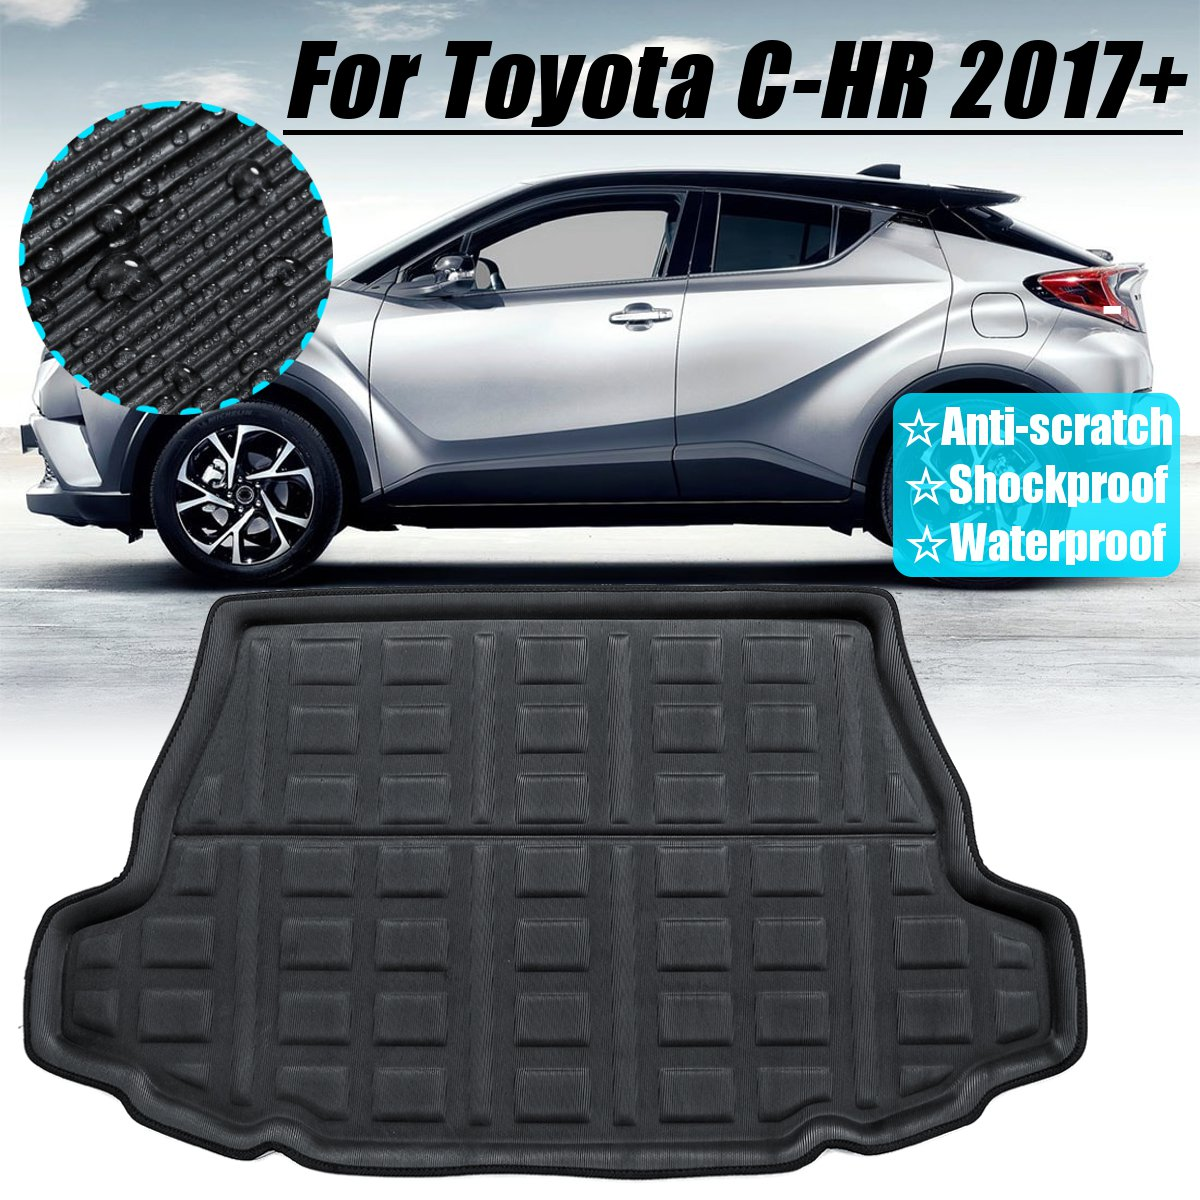 For Toyota C-HR CHR 2017+ 2018 2019 Rear Trunk Cargo Boot Liner Tray Floor Mat Floor Sheet Carpet Mud Protector Waterproof